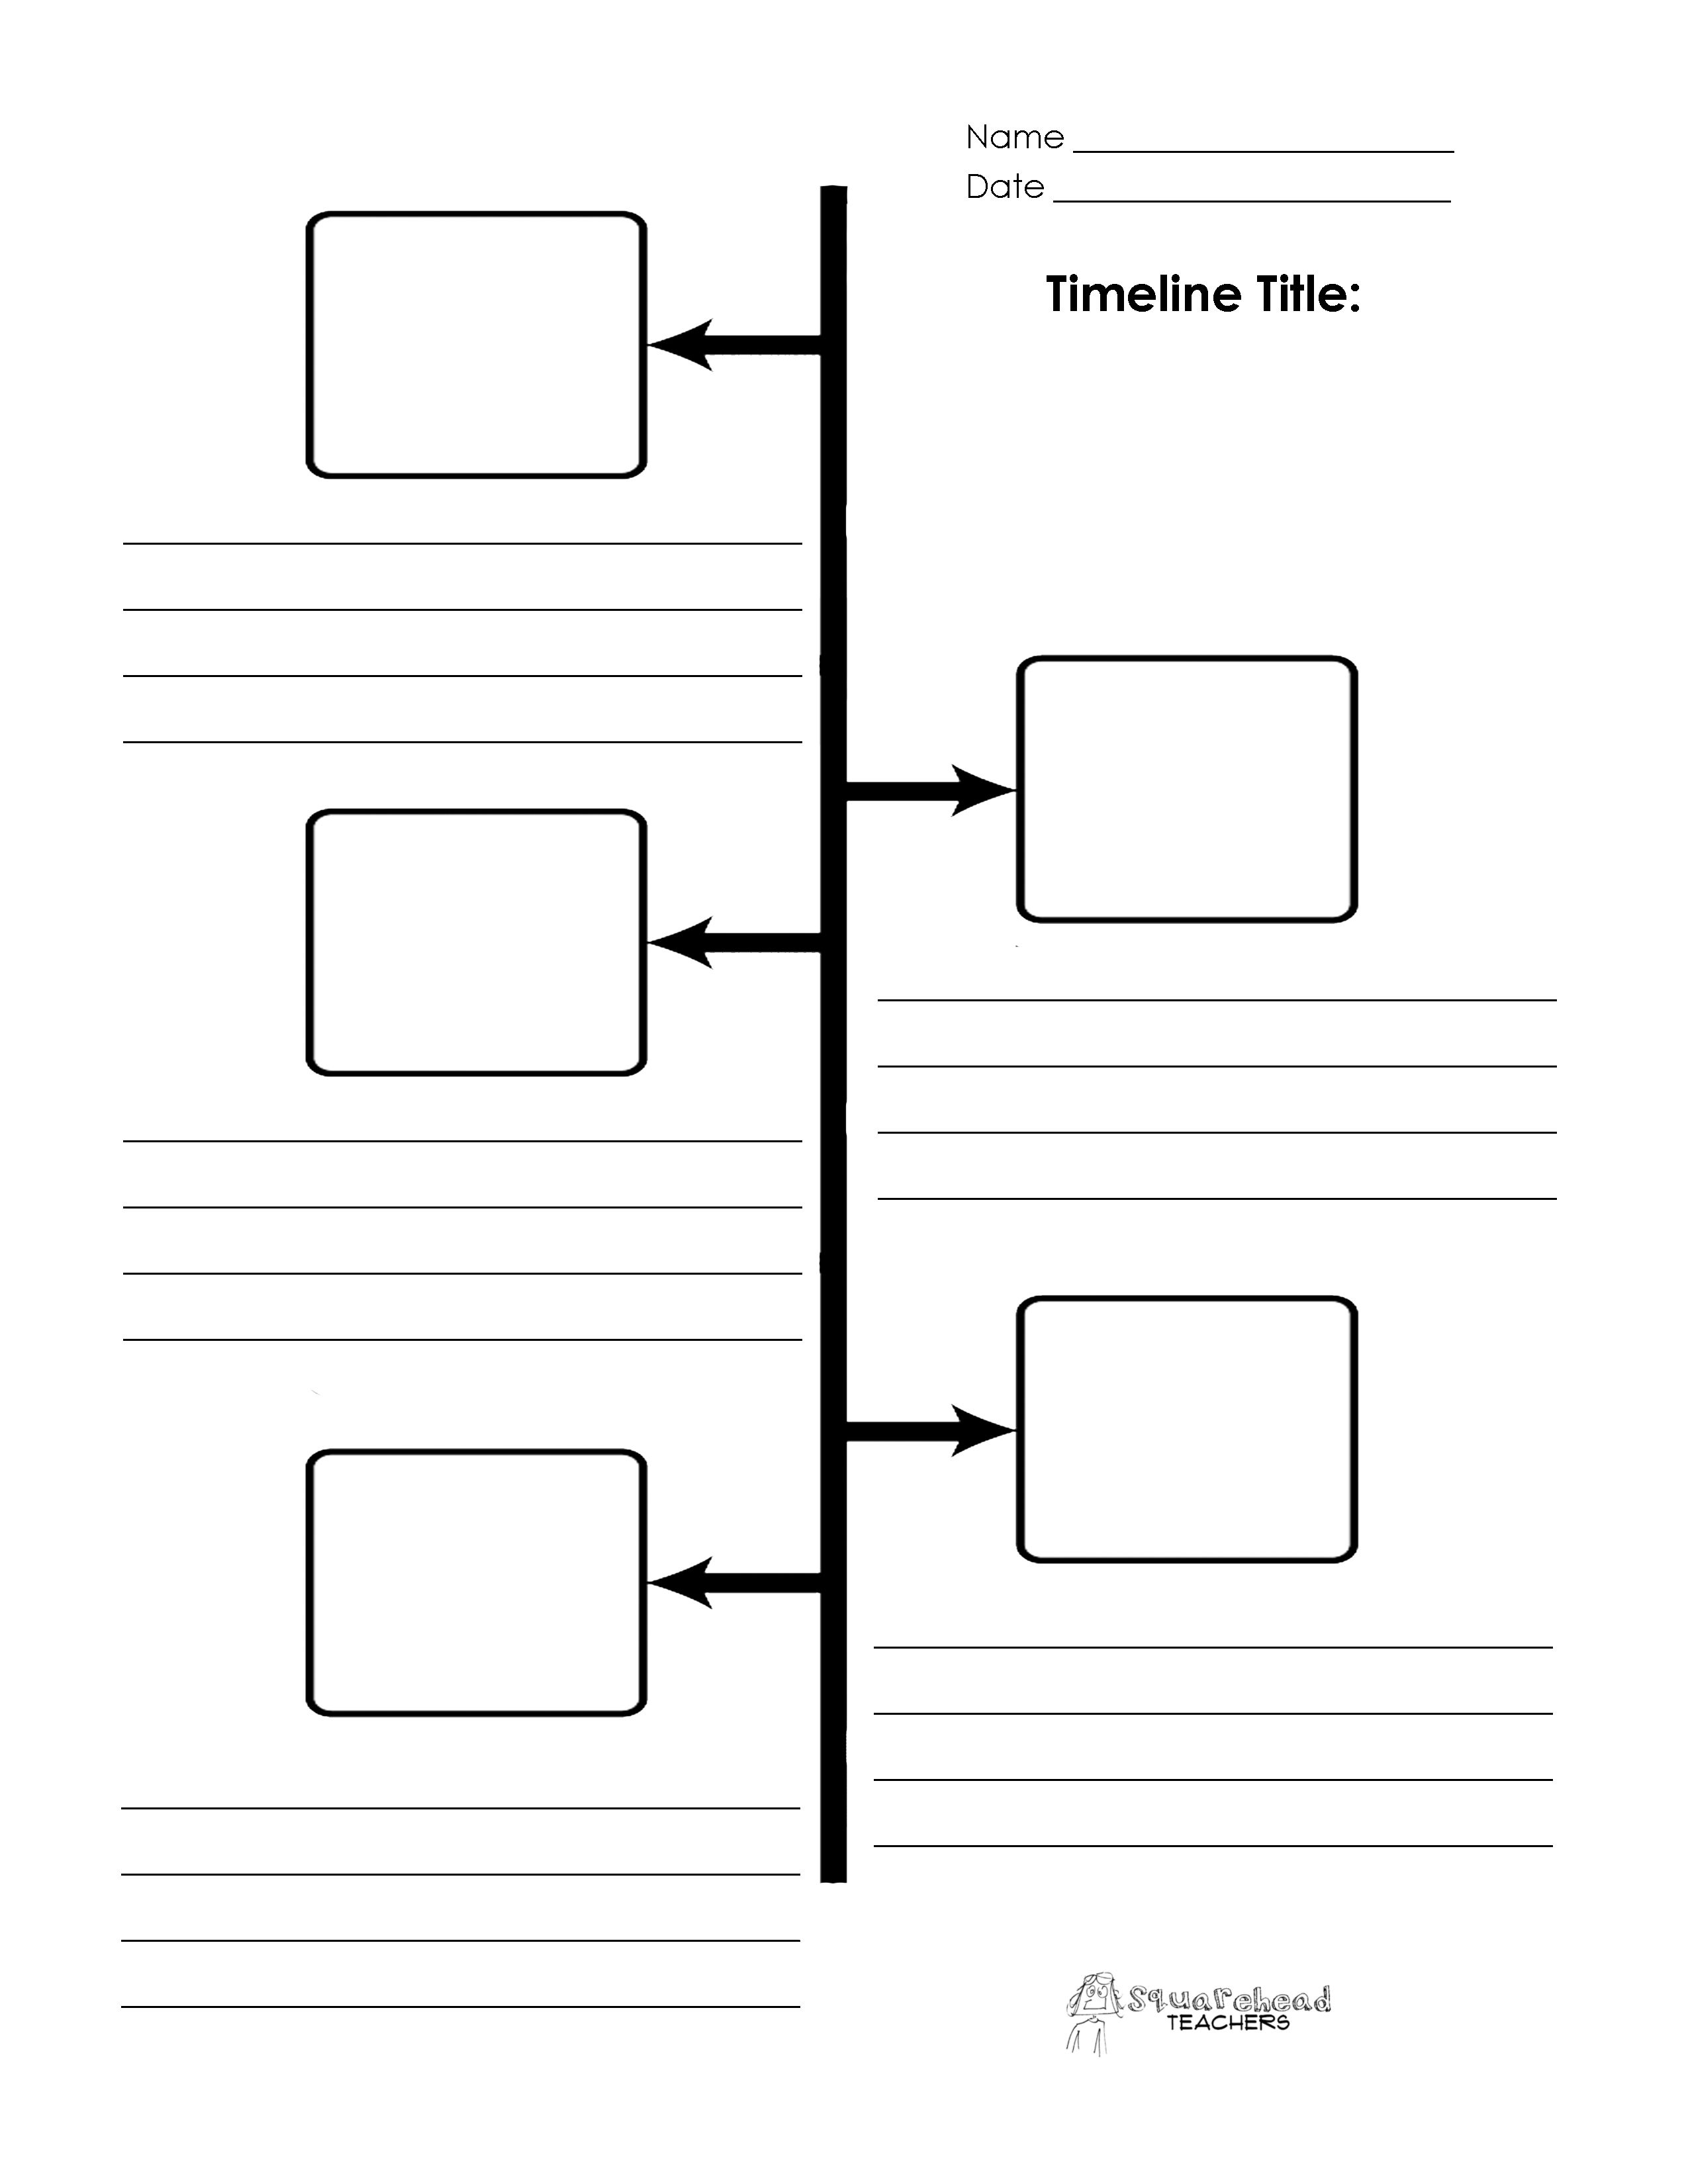 medium resolution of timeline-boxes-and-lines.jpg 2